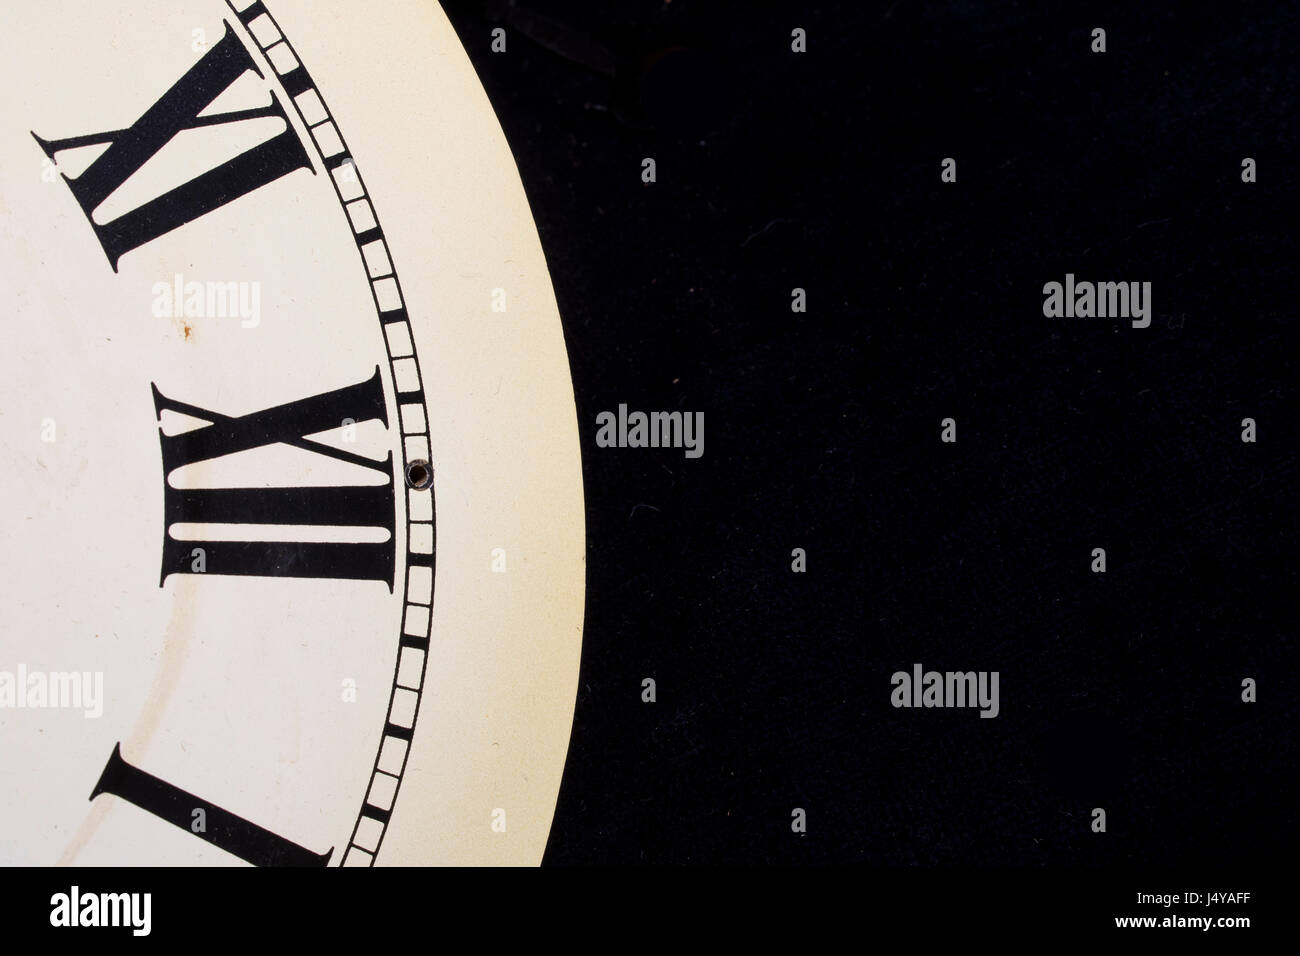 Close Up Of Roman Numeral Clock Face - Stock Image